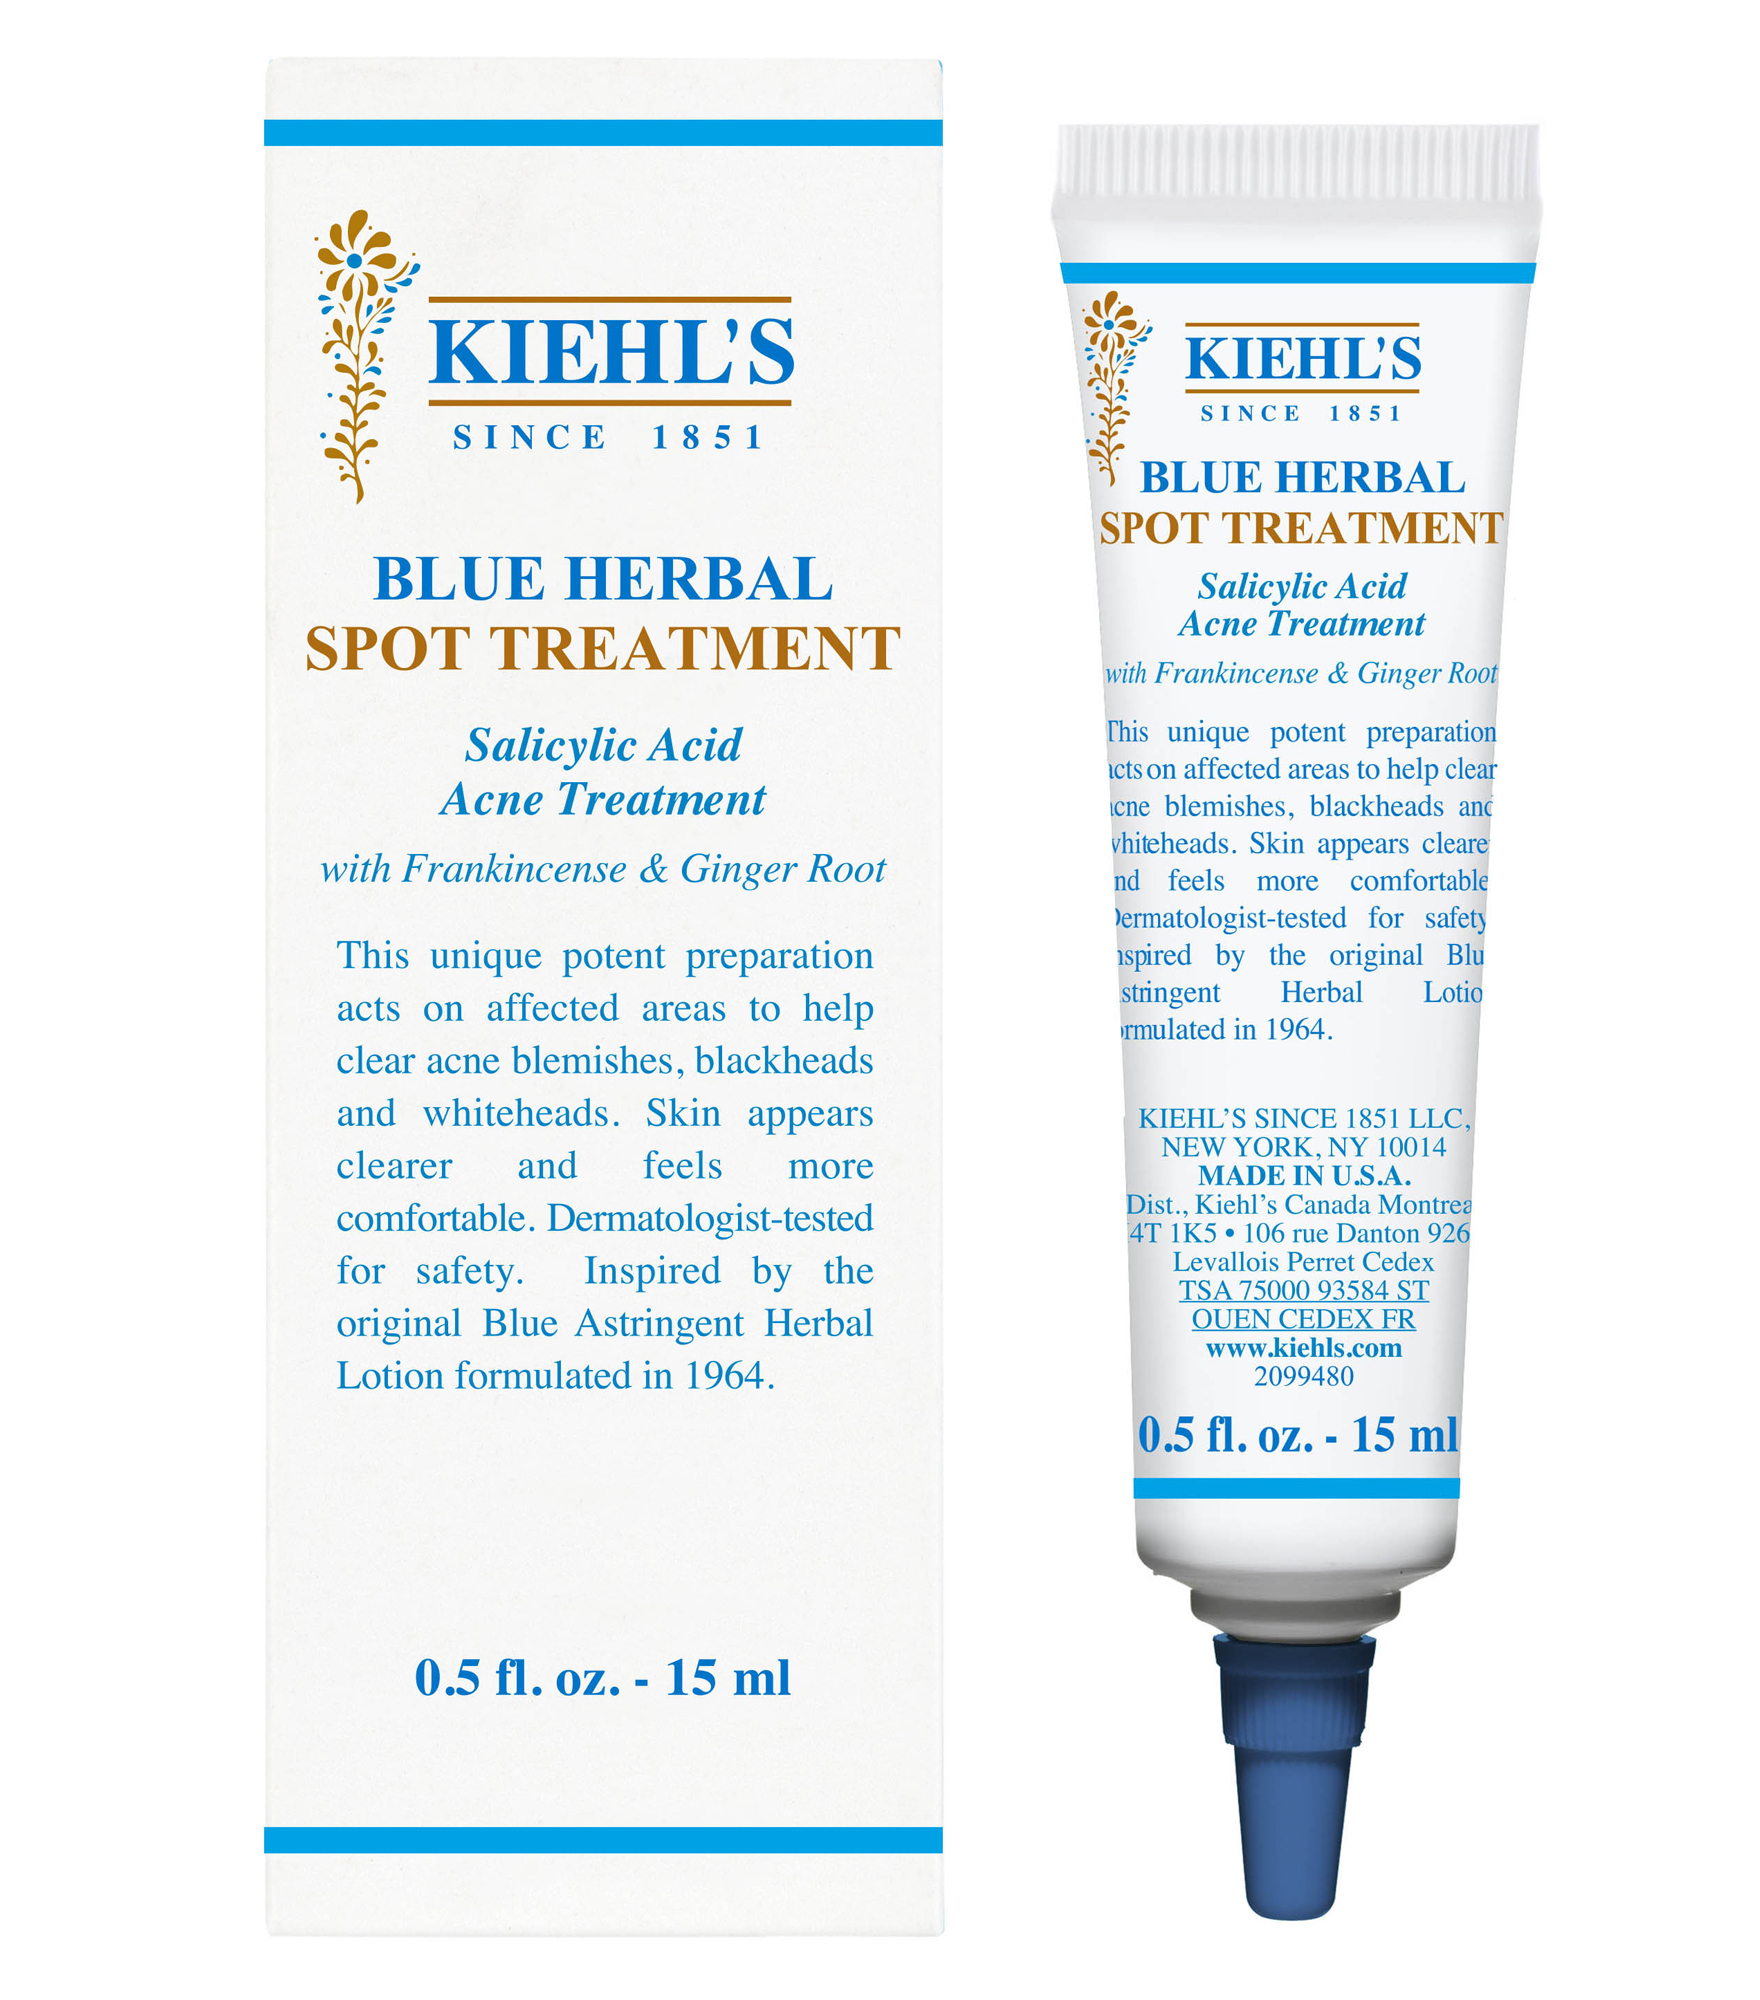 Kiehl's Blue Herbal Spot Treatment